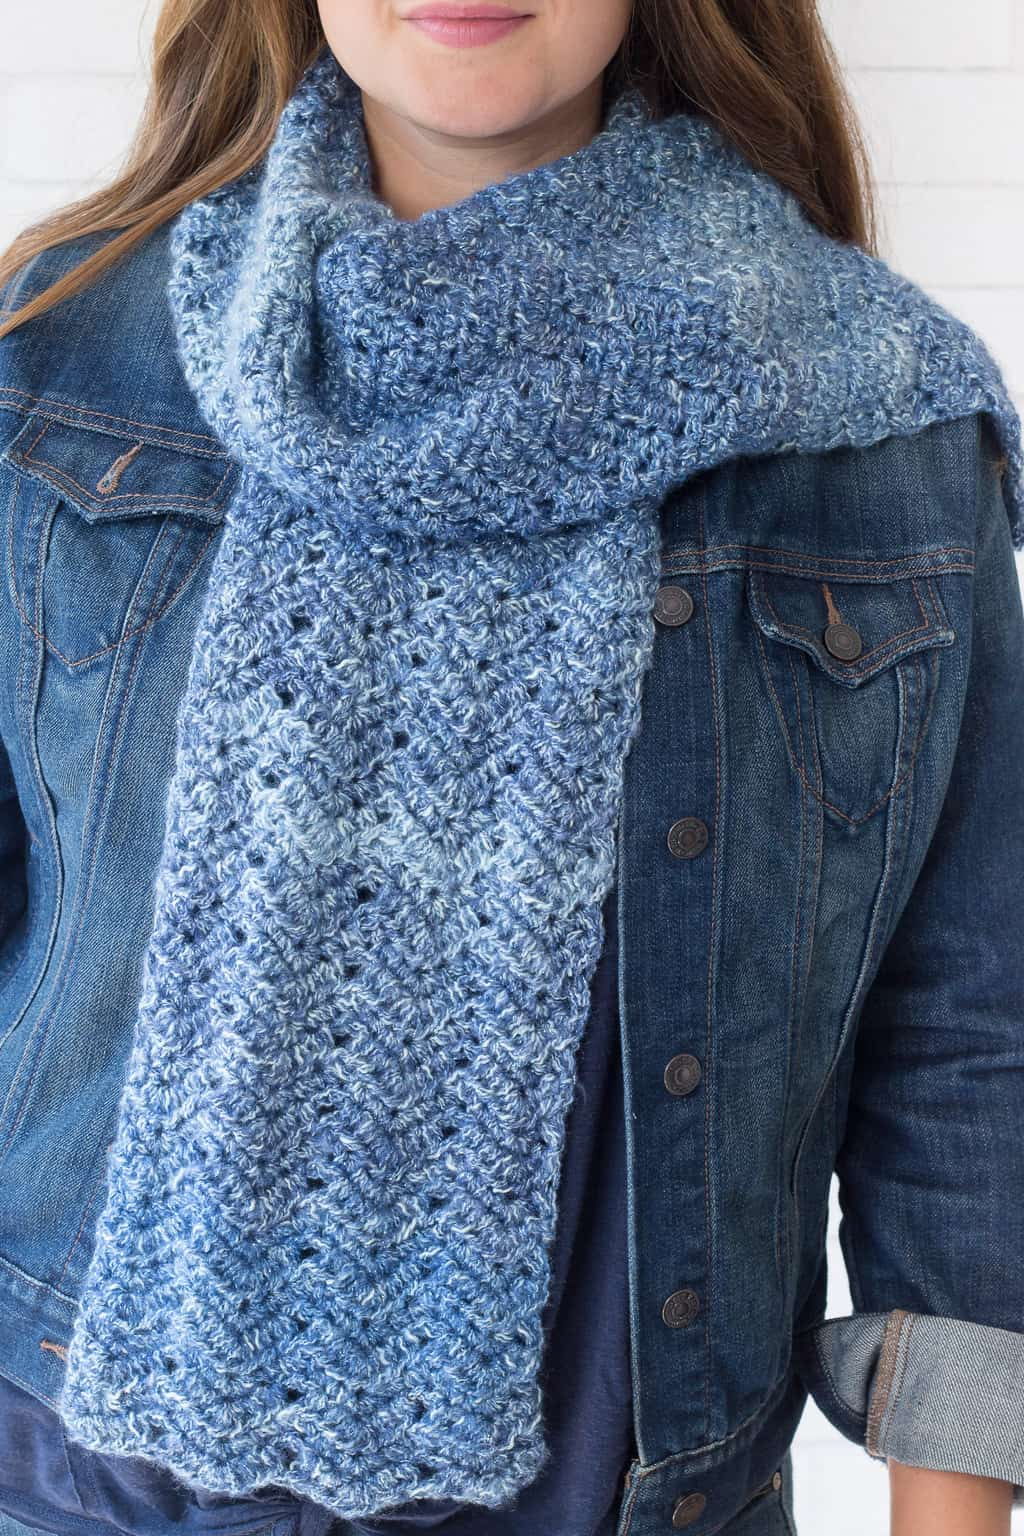 Luna Chevron Scarf Free Crochet Pattern by Rescued Paw Designs